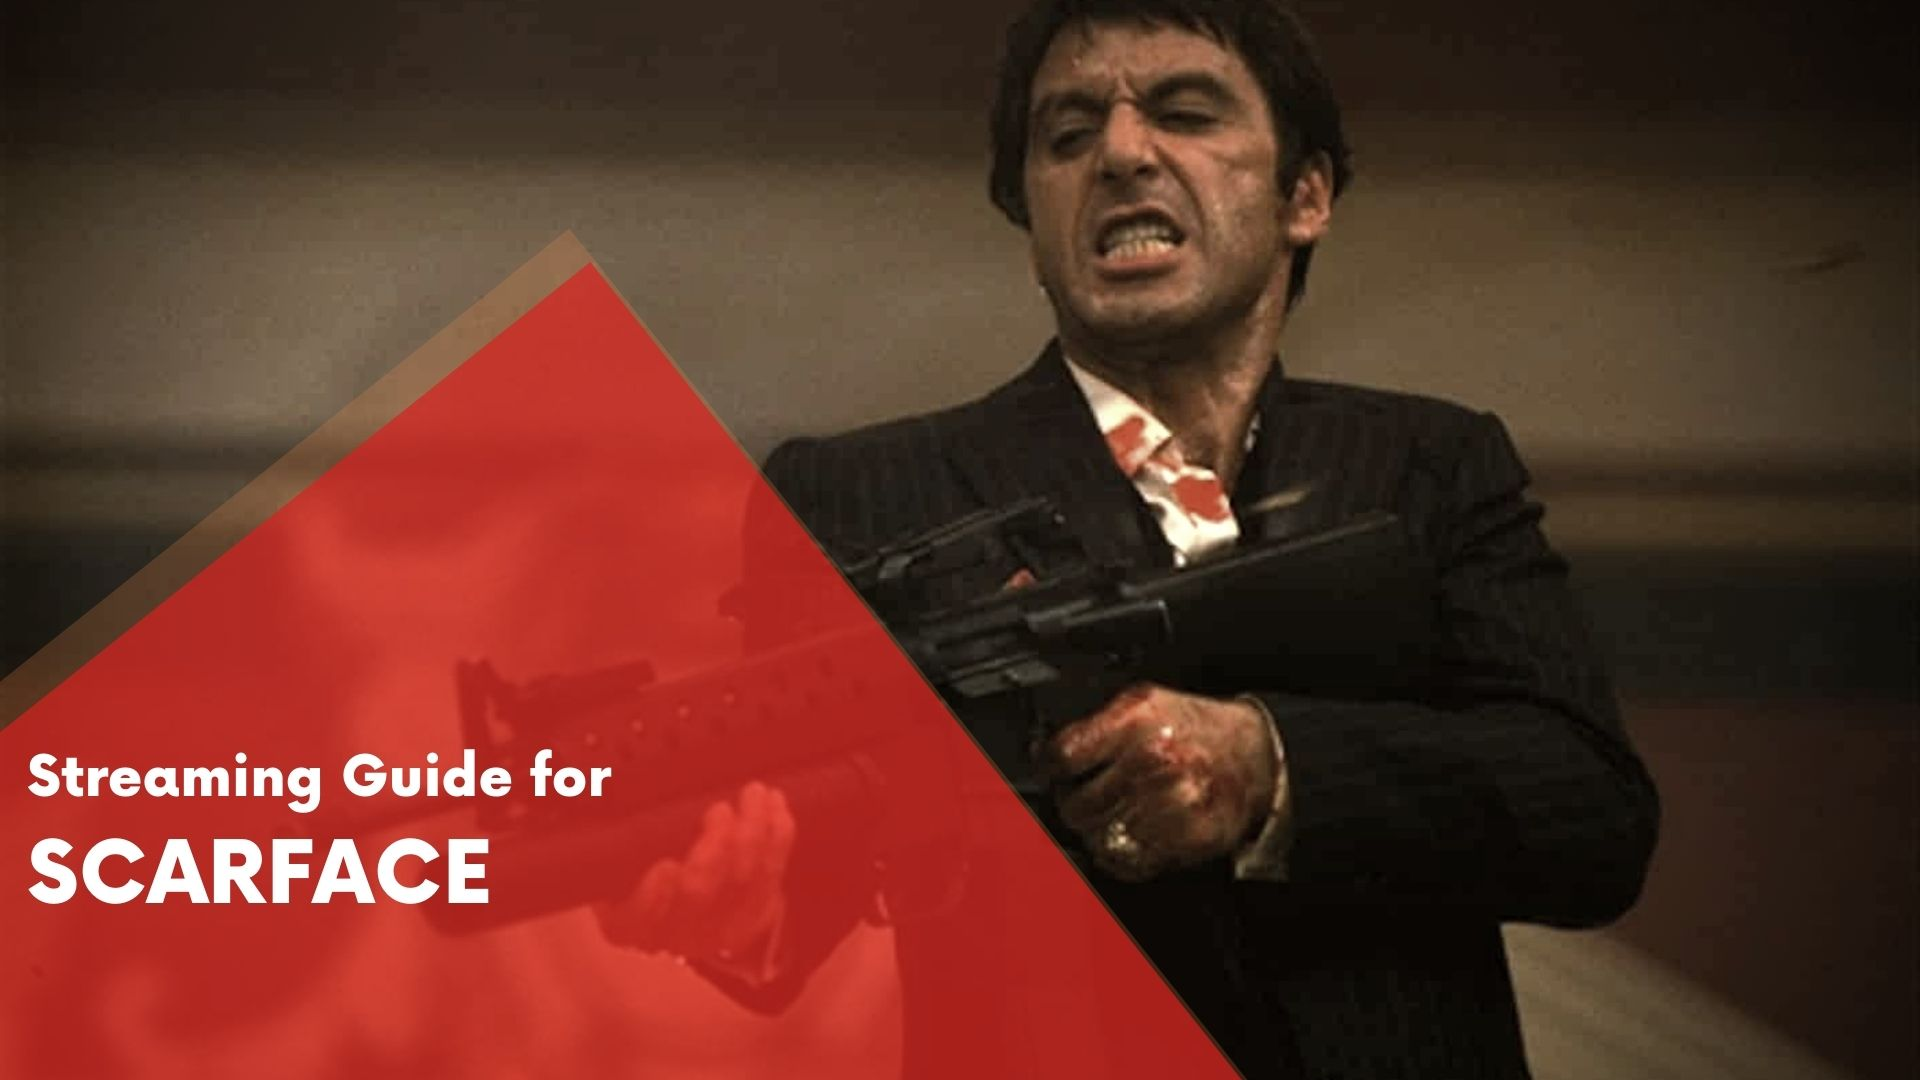 Answering if Scarface can be streamed on Hulu